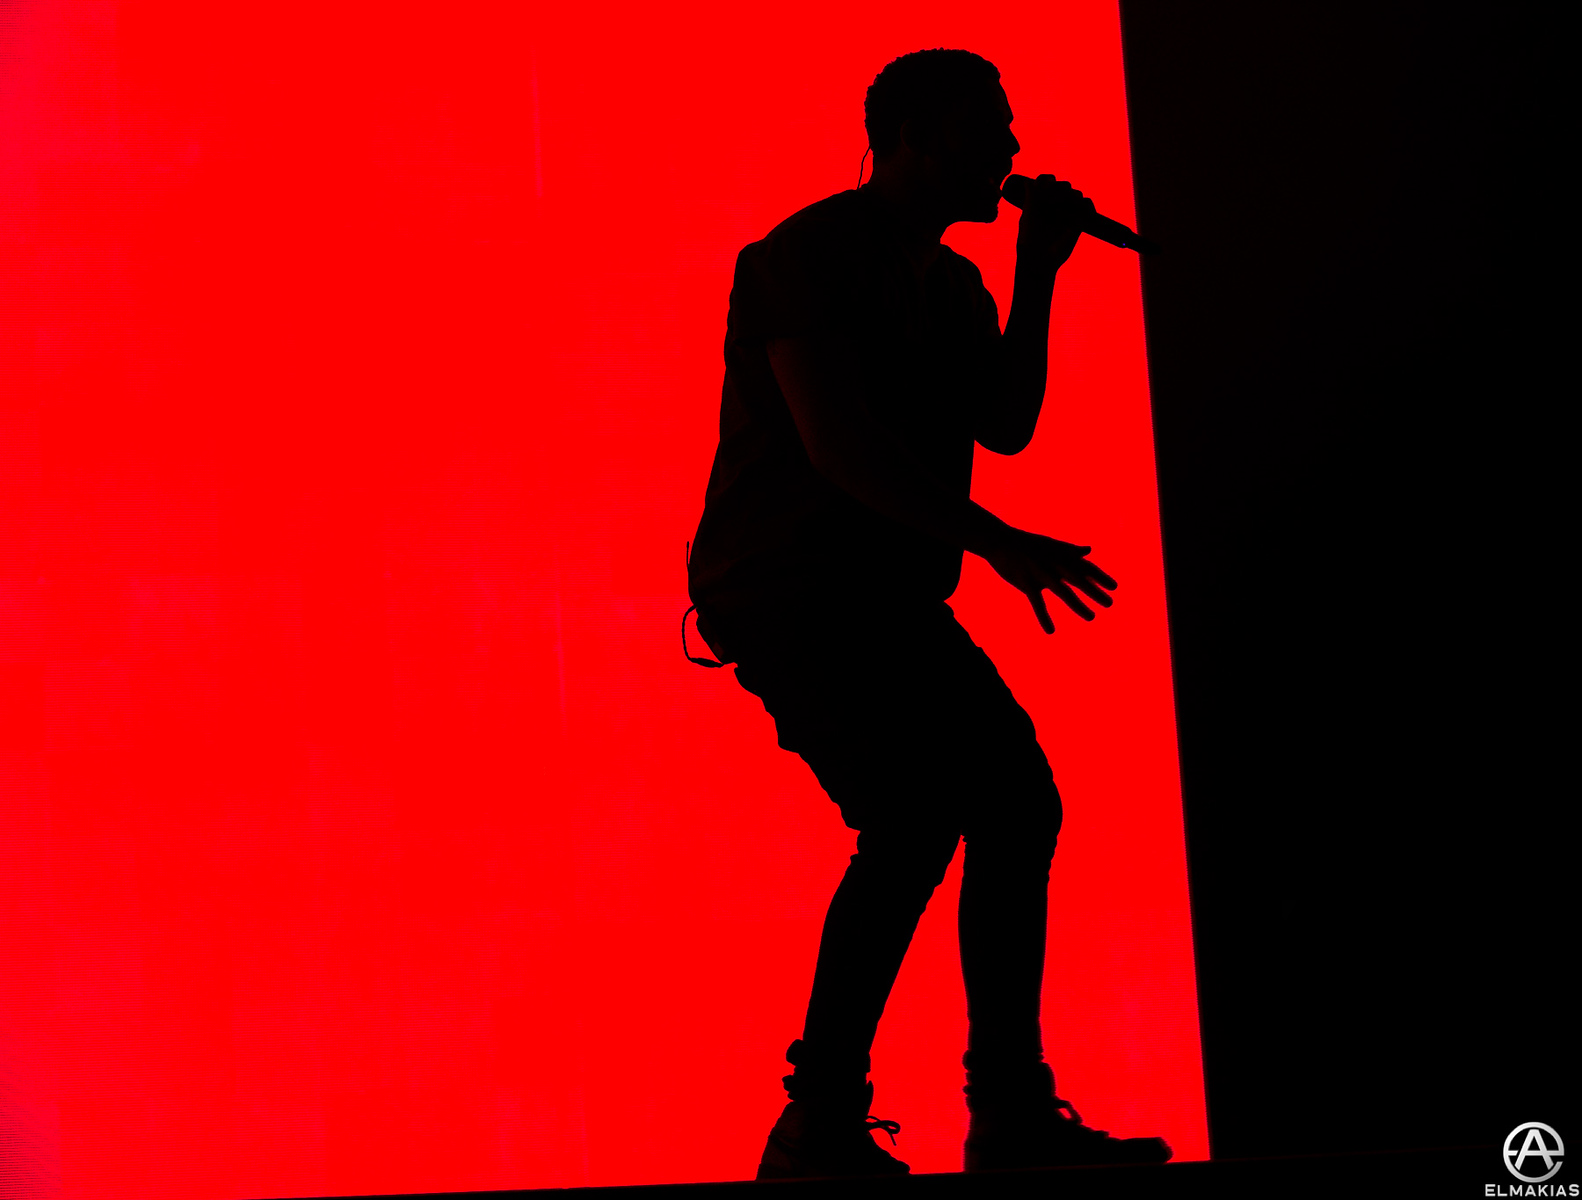 Drake live at Coachella Festival in Indio, California on April 19th, 2015